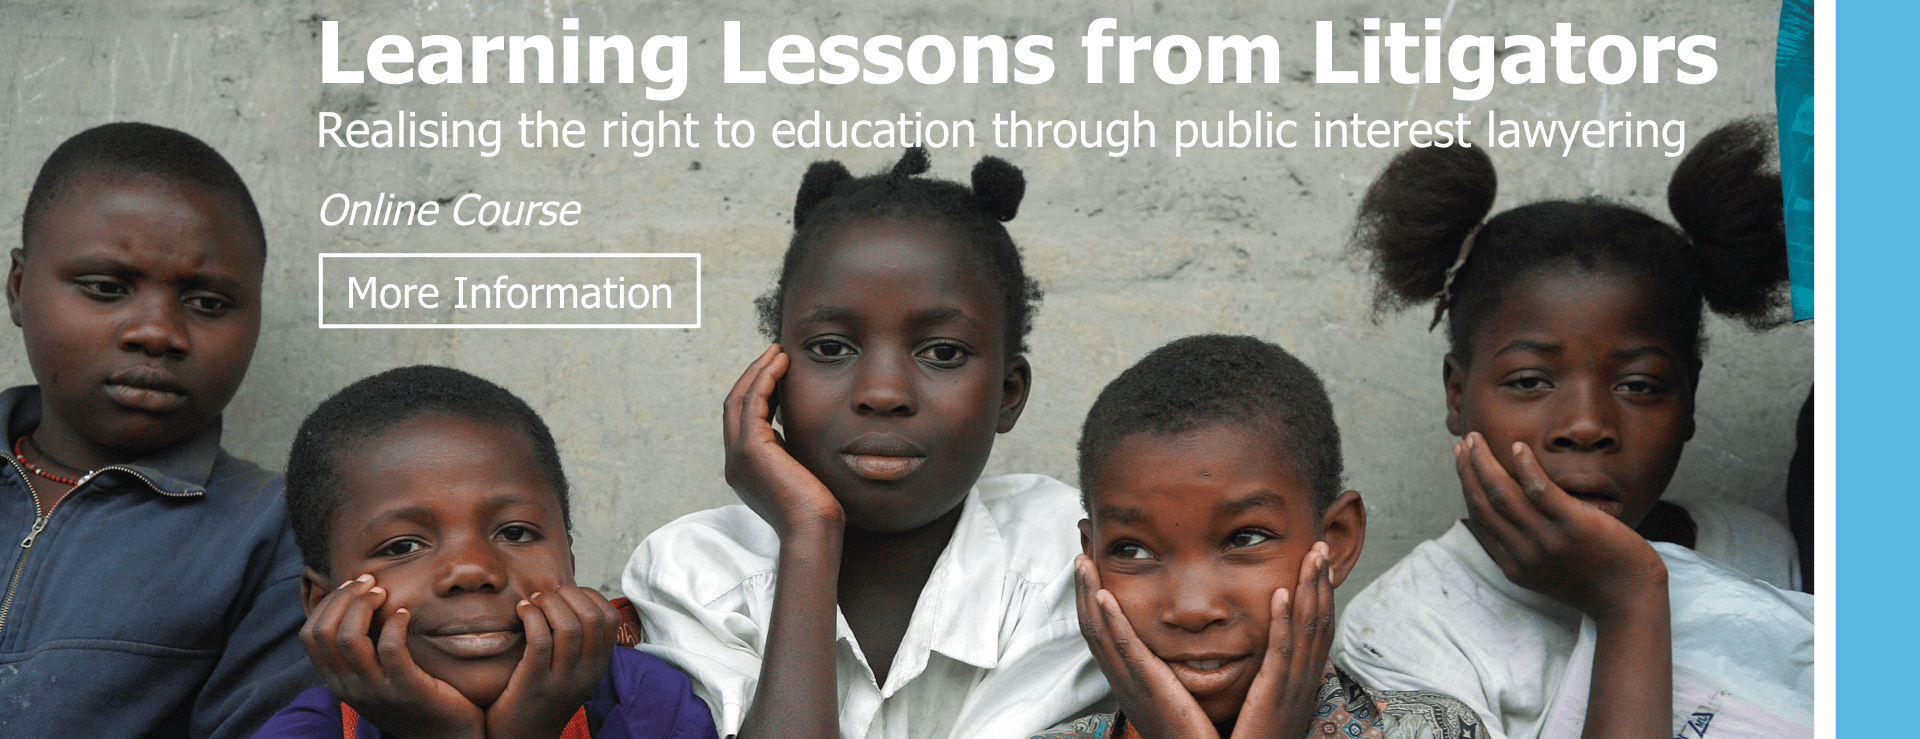 Learning Lessons from Litigators: Realising the Right to Education Through Public Interest Lawyering